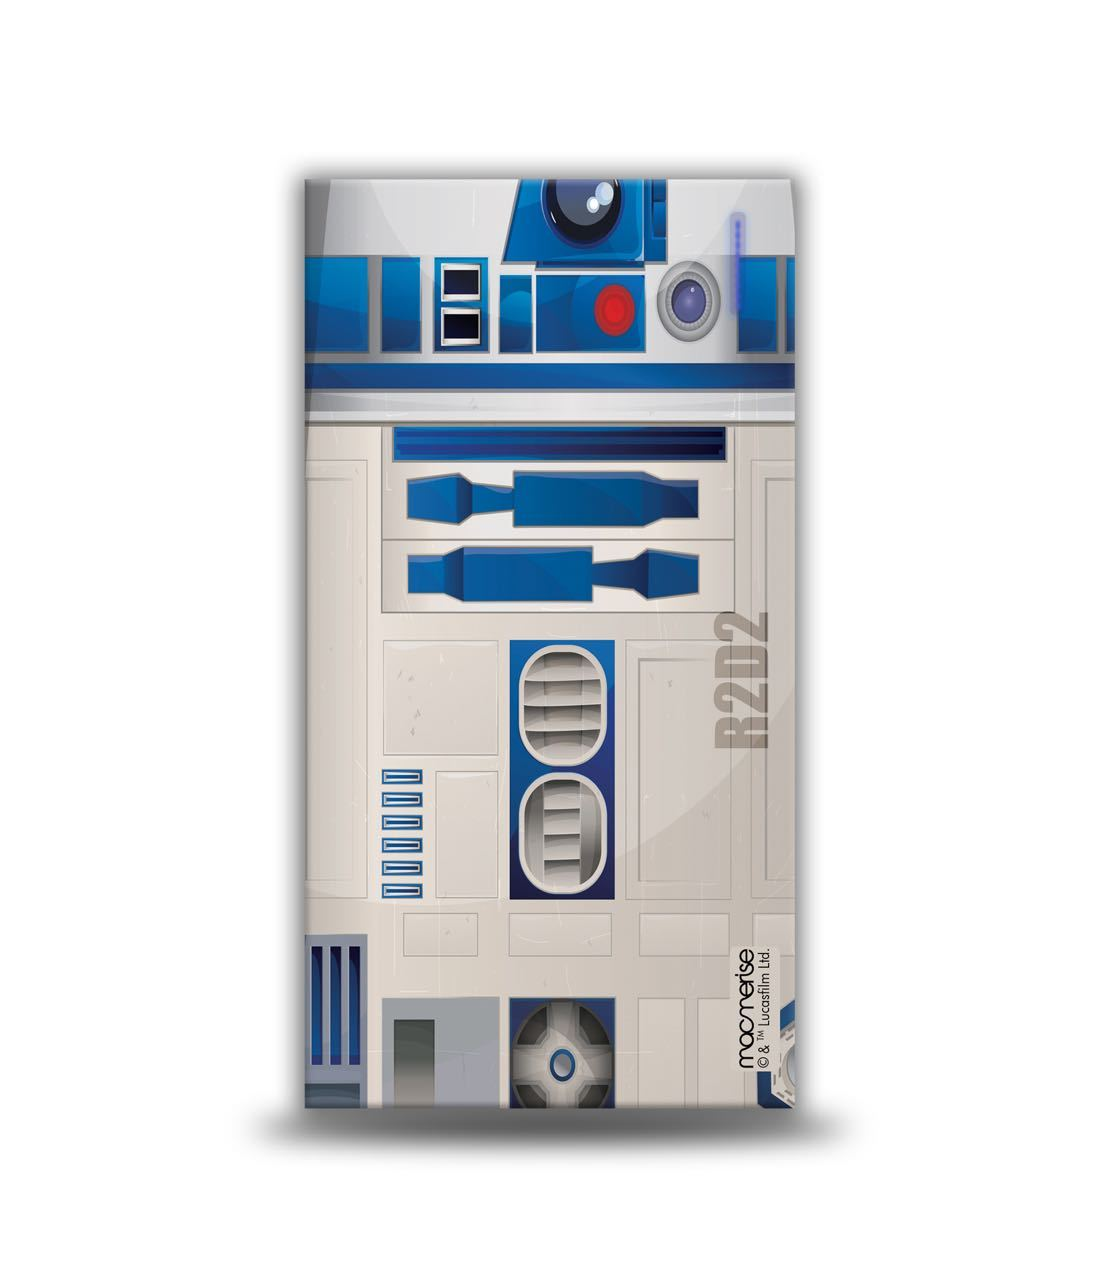 Attire R2D2 Official 4000 MAH Powerbank by Macmerise